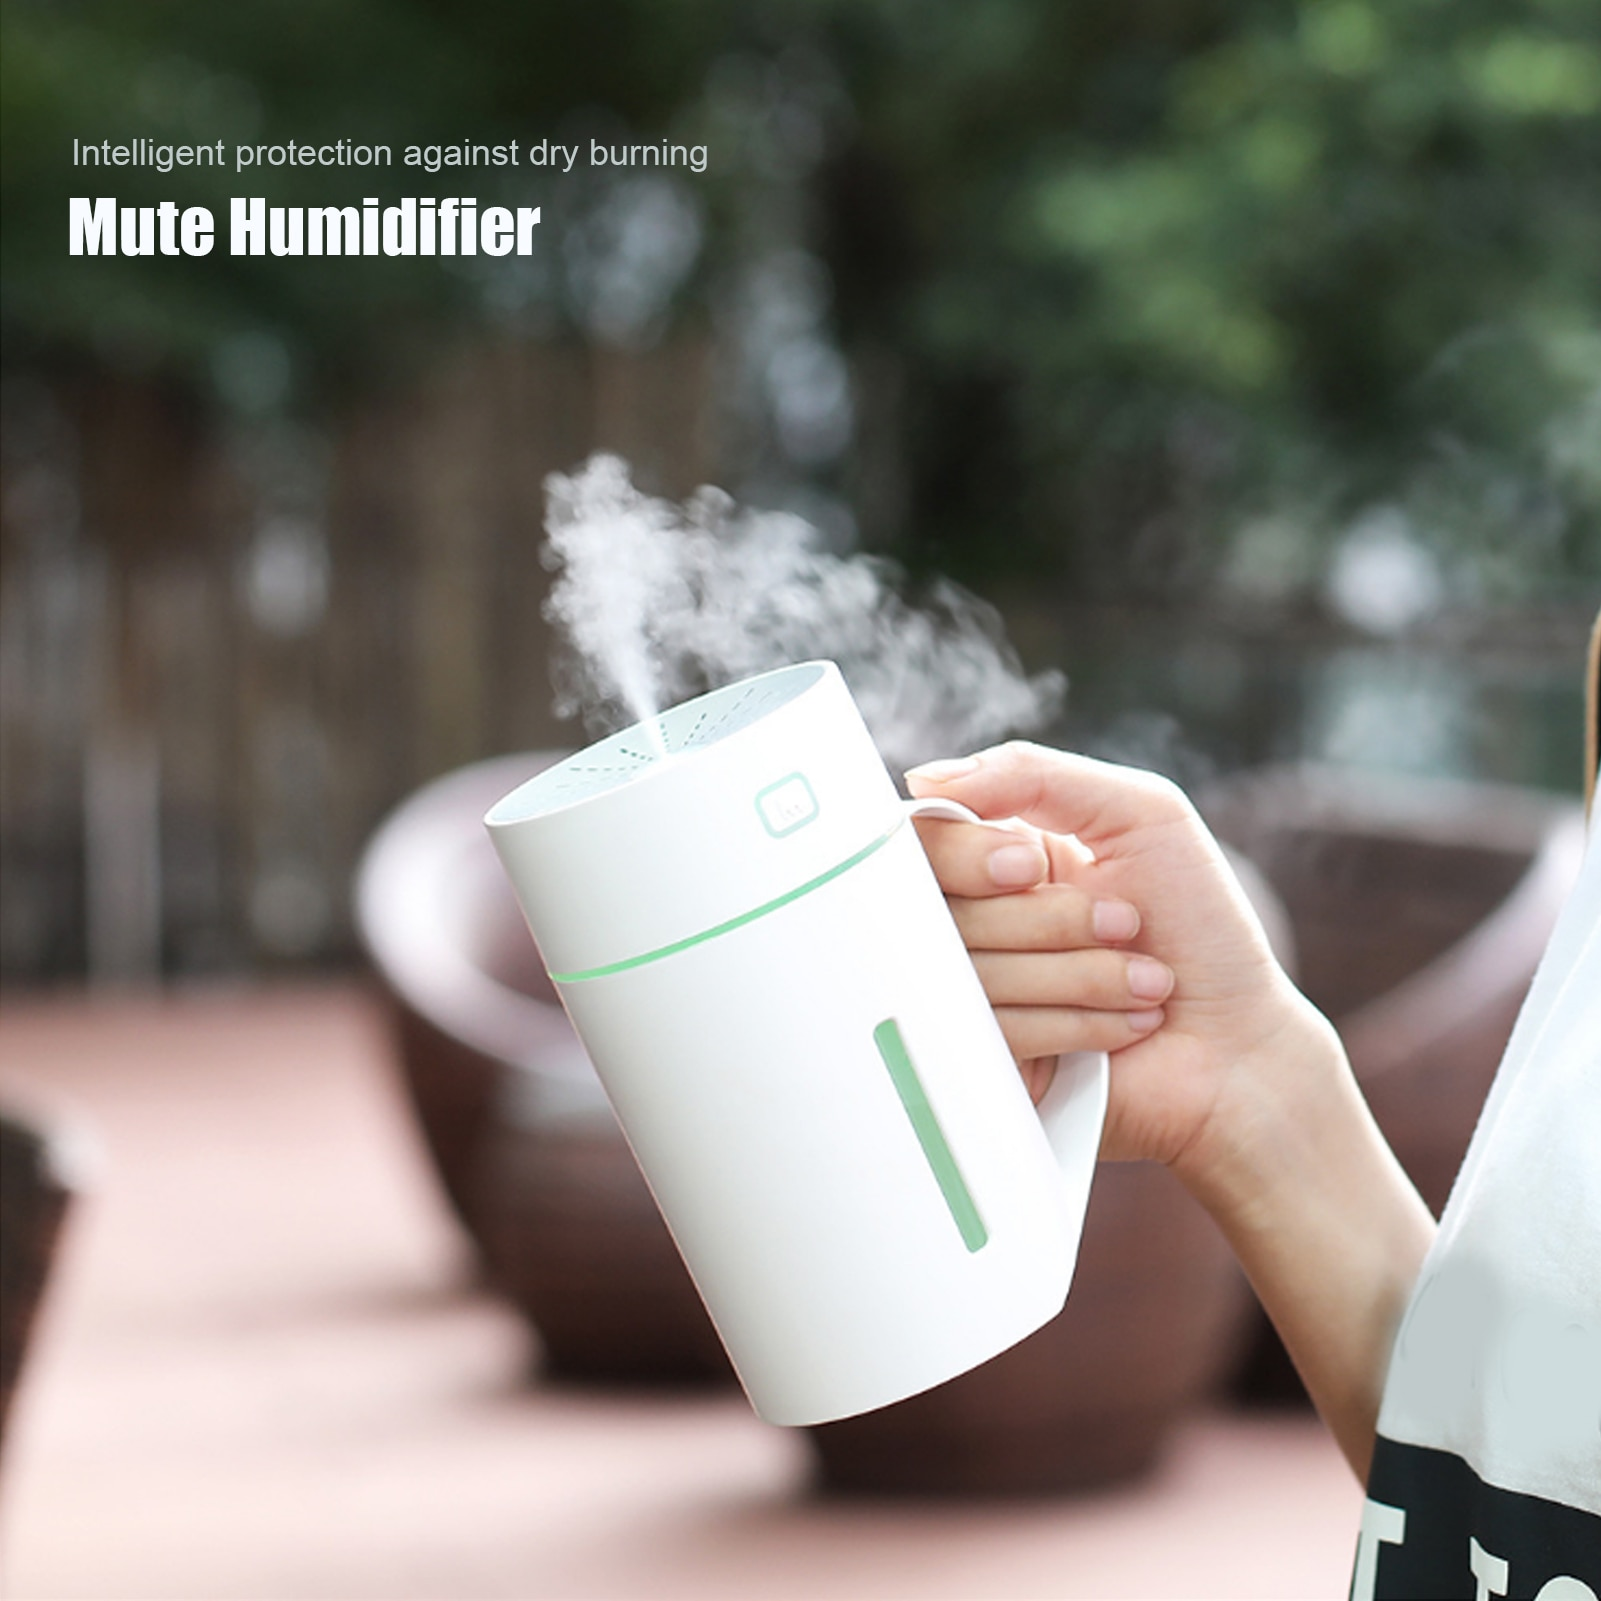 420ml Portable Mini Humidifier Aroma Diffuser USB Mute Desktop Air Humidifier with Night Light for Home Office Humidificadores